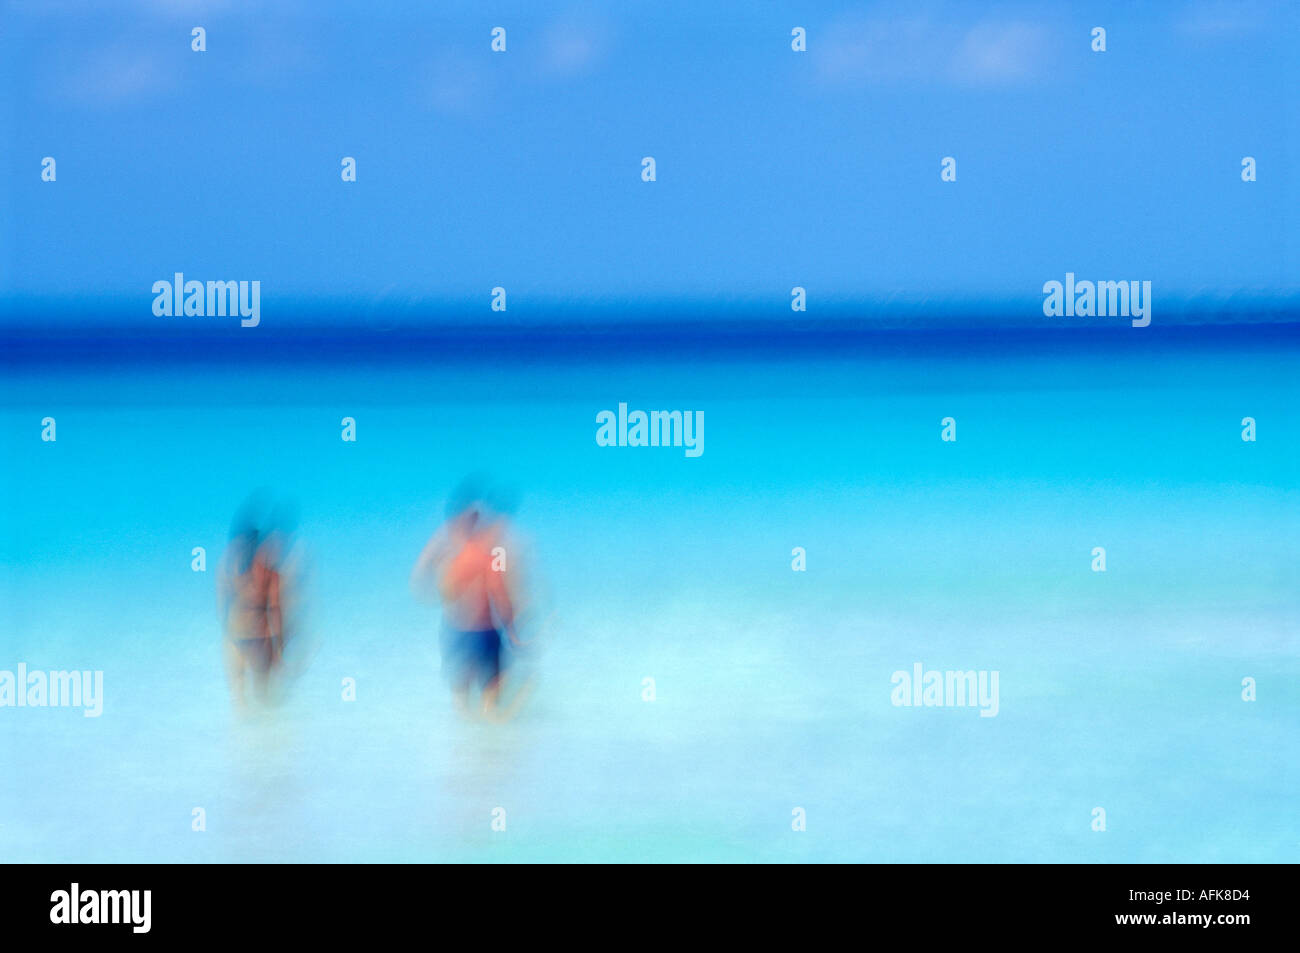 Blurred motion image of couple walking into the ocean in Cancun Mexico Model Released Image - Stock Image